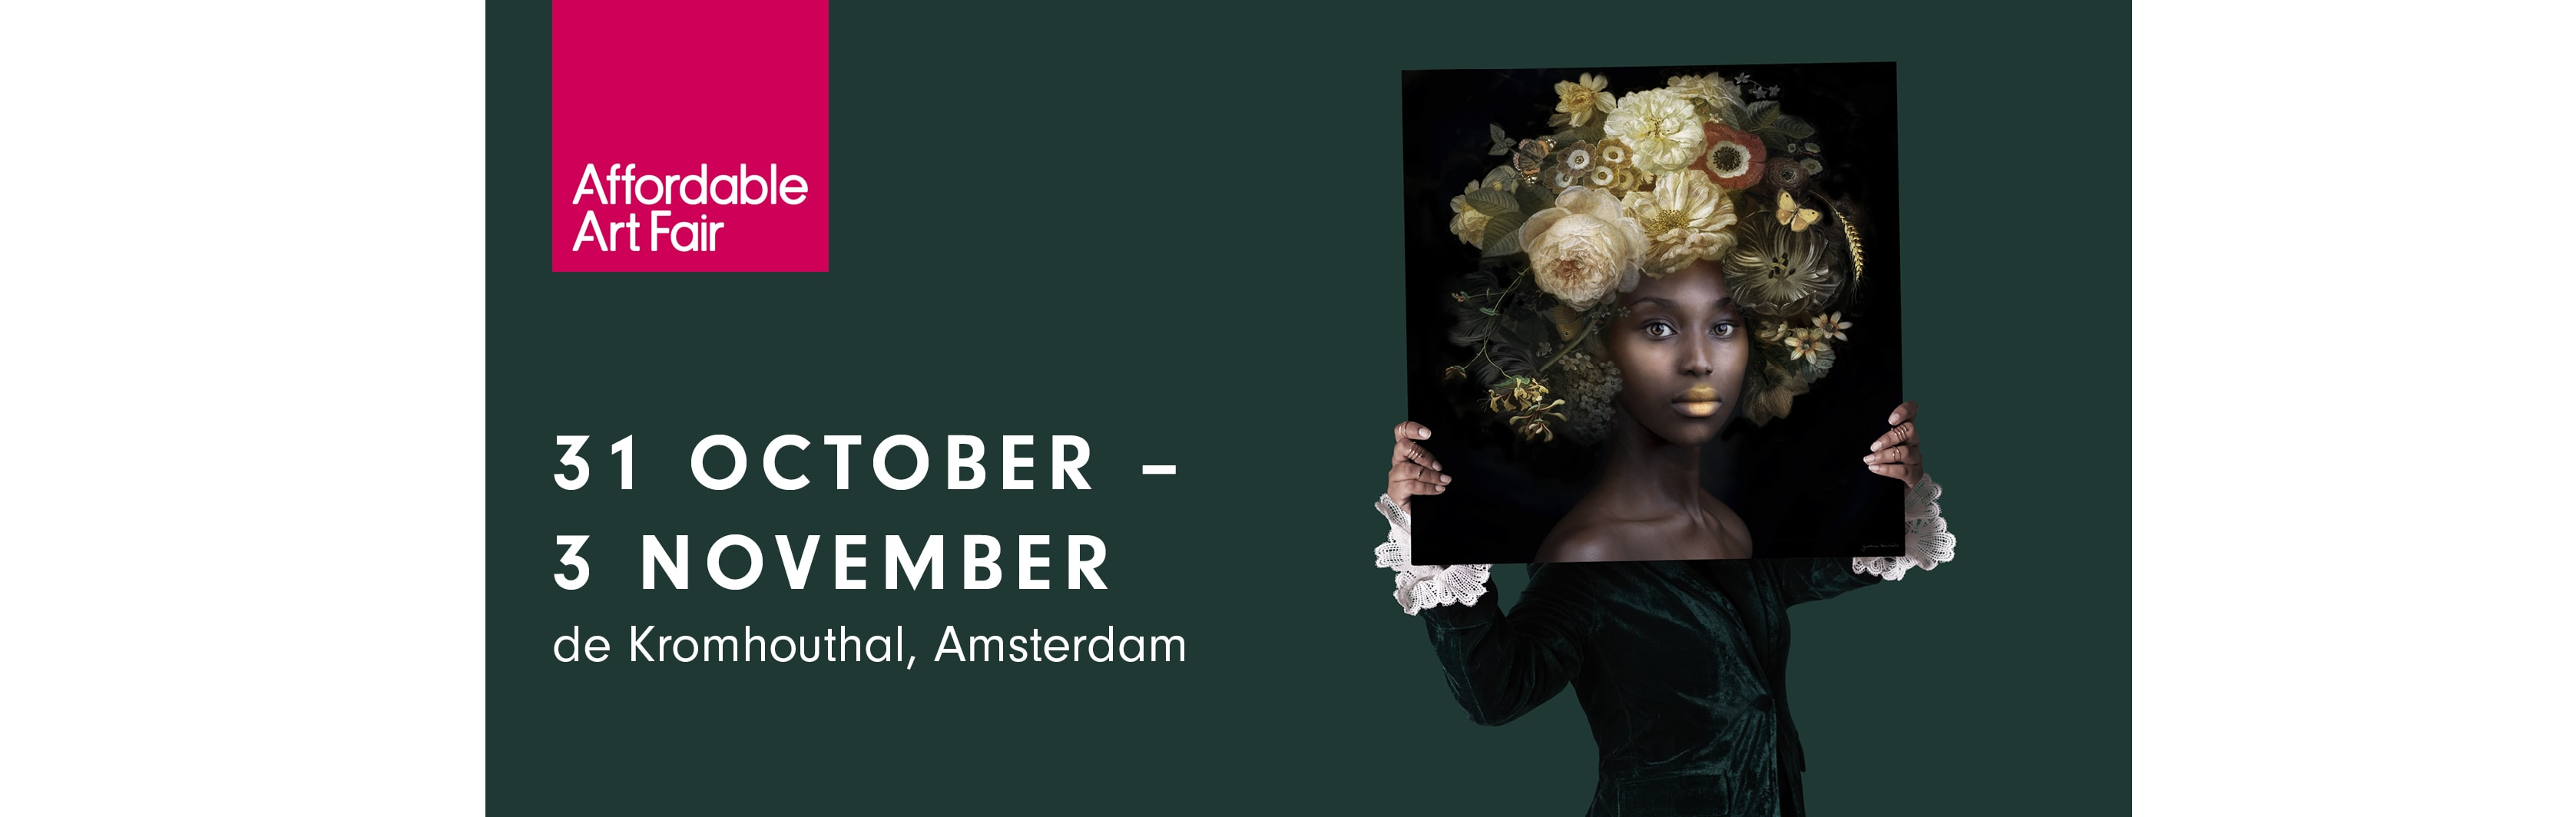 Affordable Art Fair Amsterdam - Foire